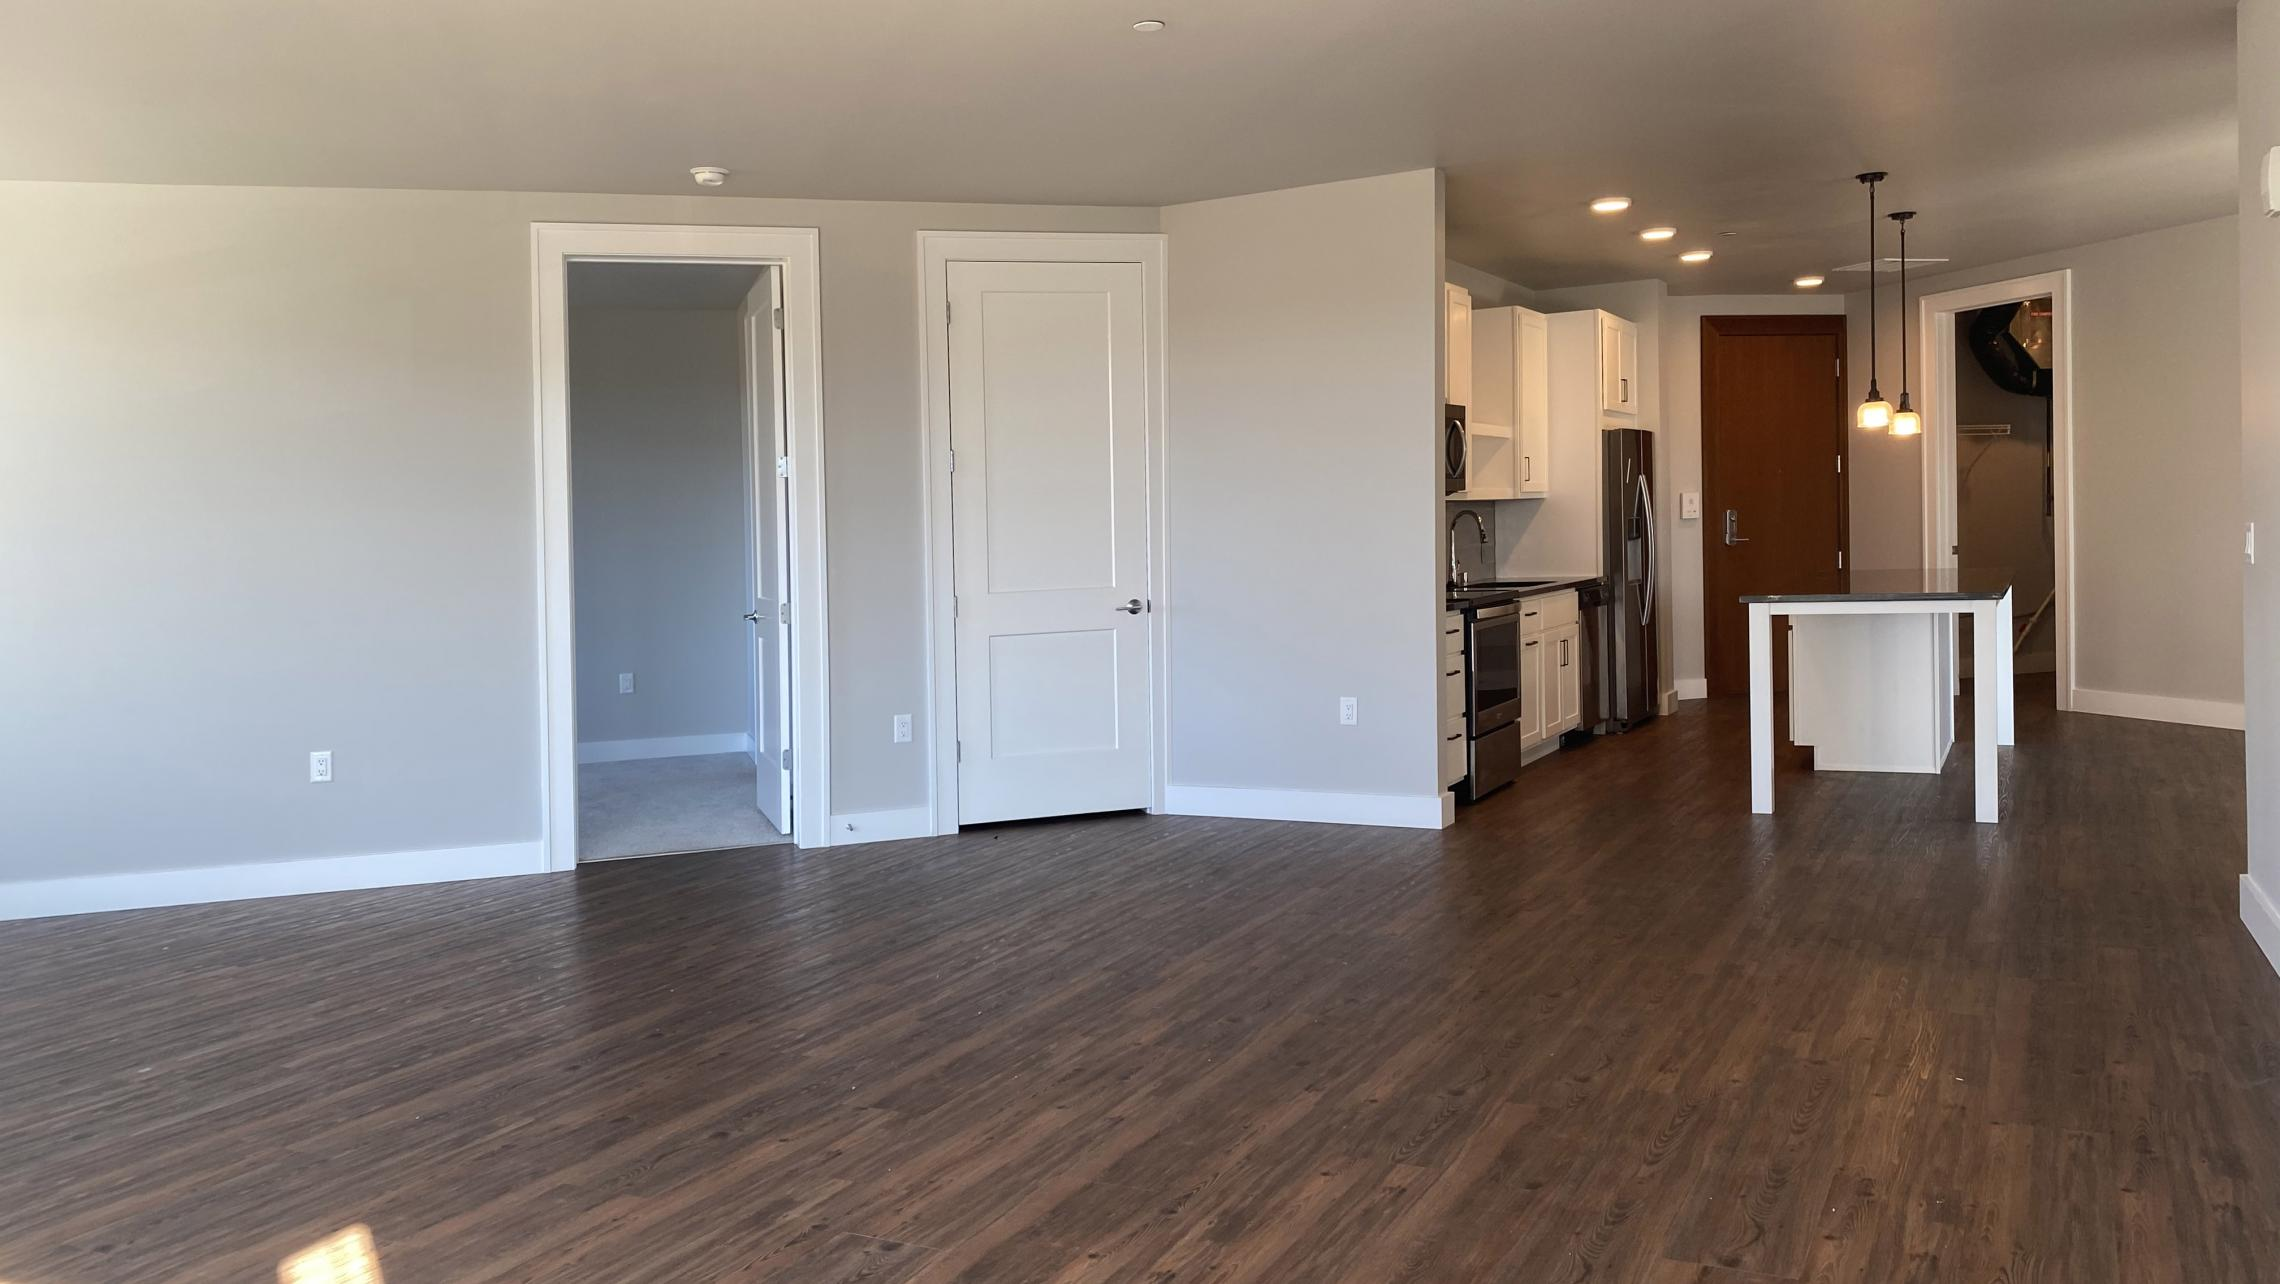 1722-Monroe-Apartments-419-Three-Bedroom-Modern-Upscale-Design-Windows-Natural-Light-Gym-Terrace-Living-Luxury-Lounge-Madison-Living-Space-Kitchen